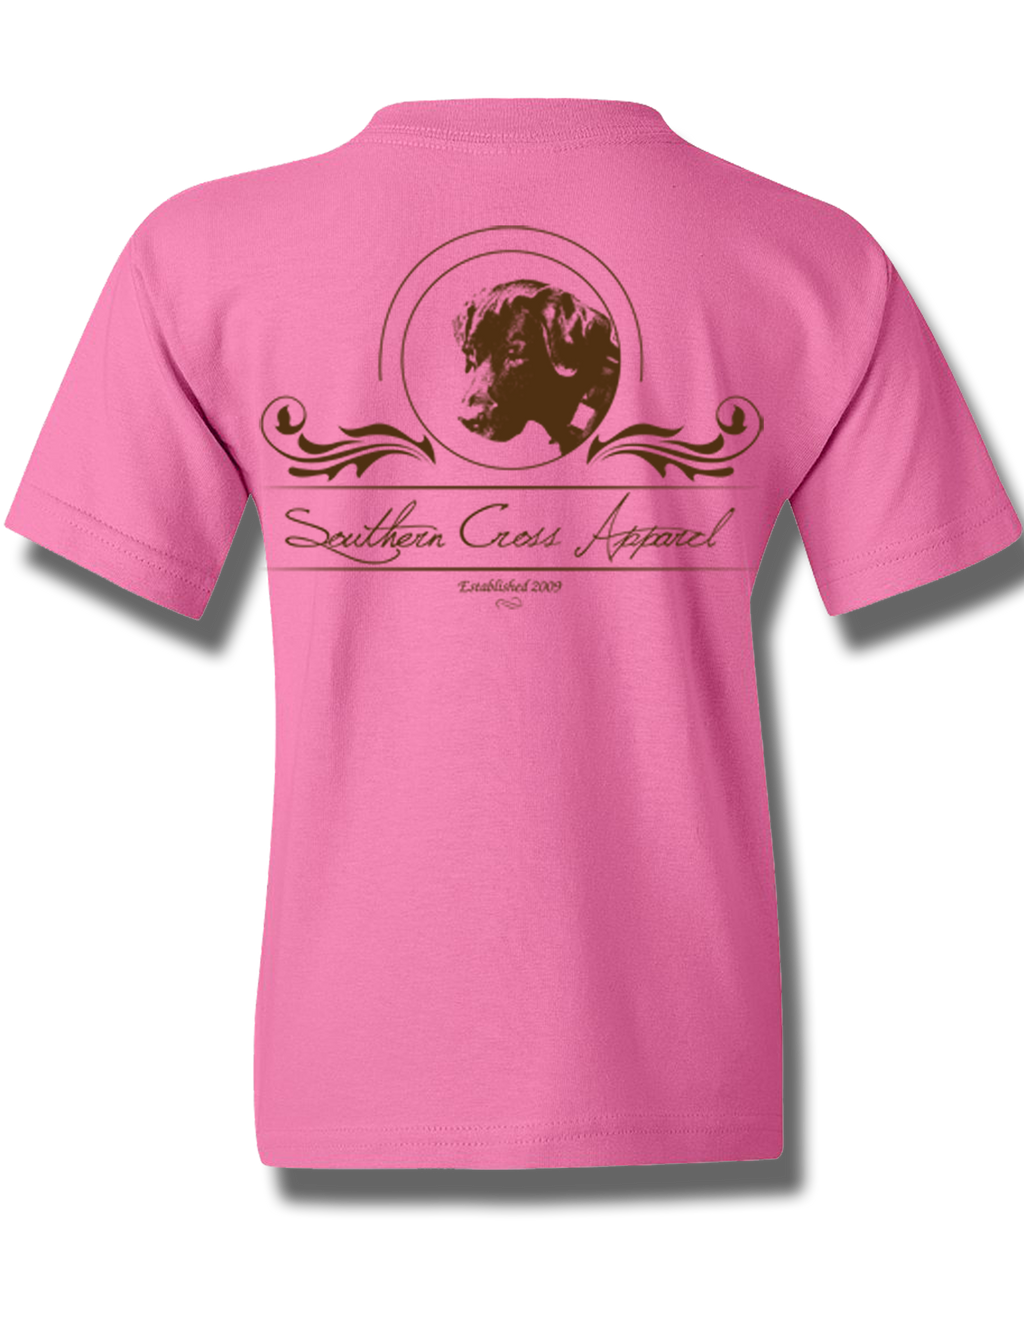 Faith Oval Azalea Youth Short Sleeve S, T-Shirt - Southern Cross Apparel